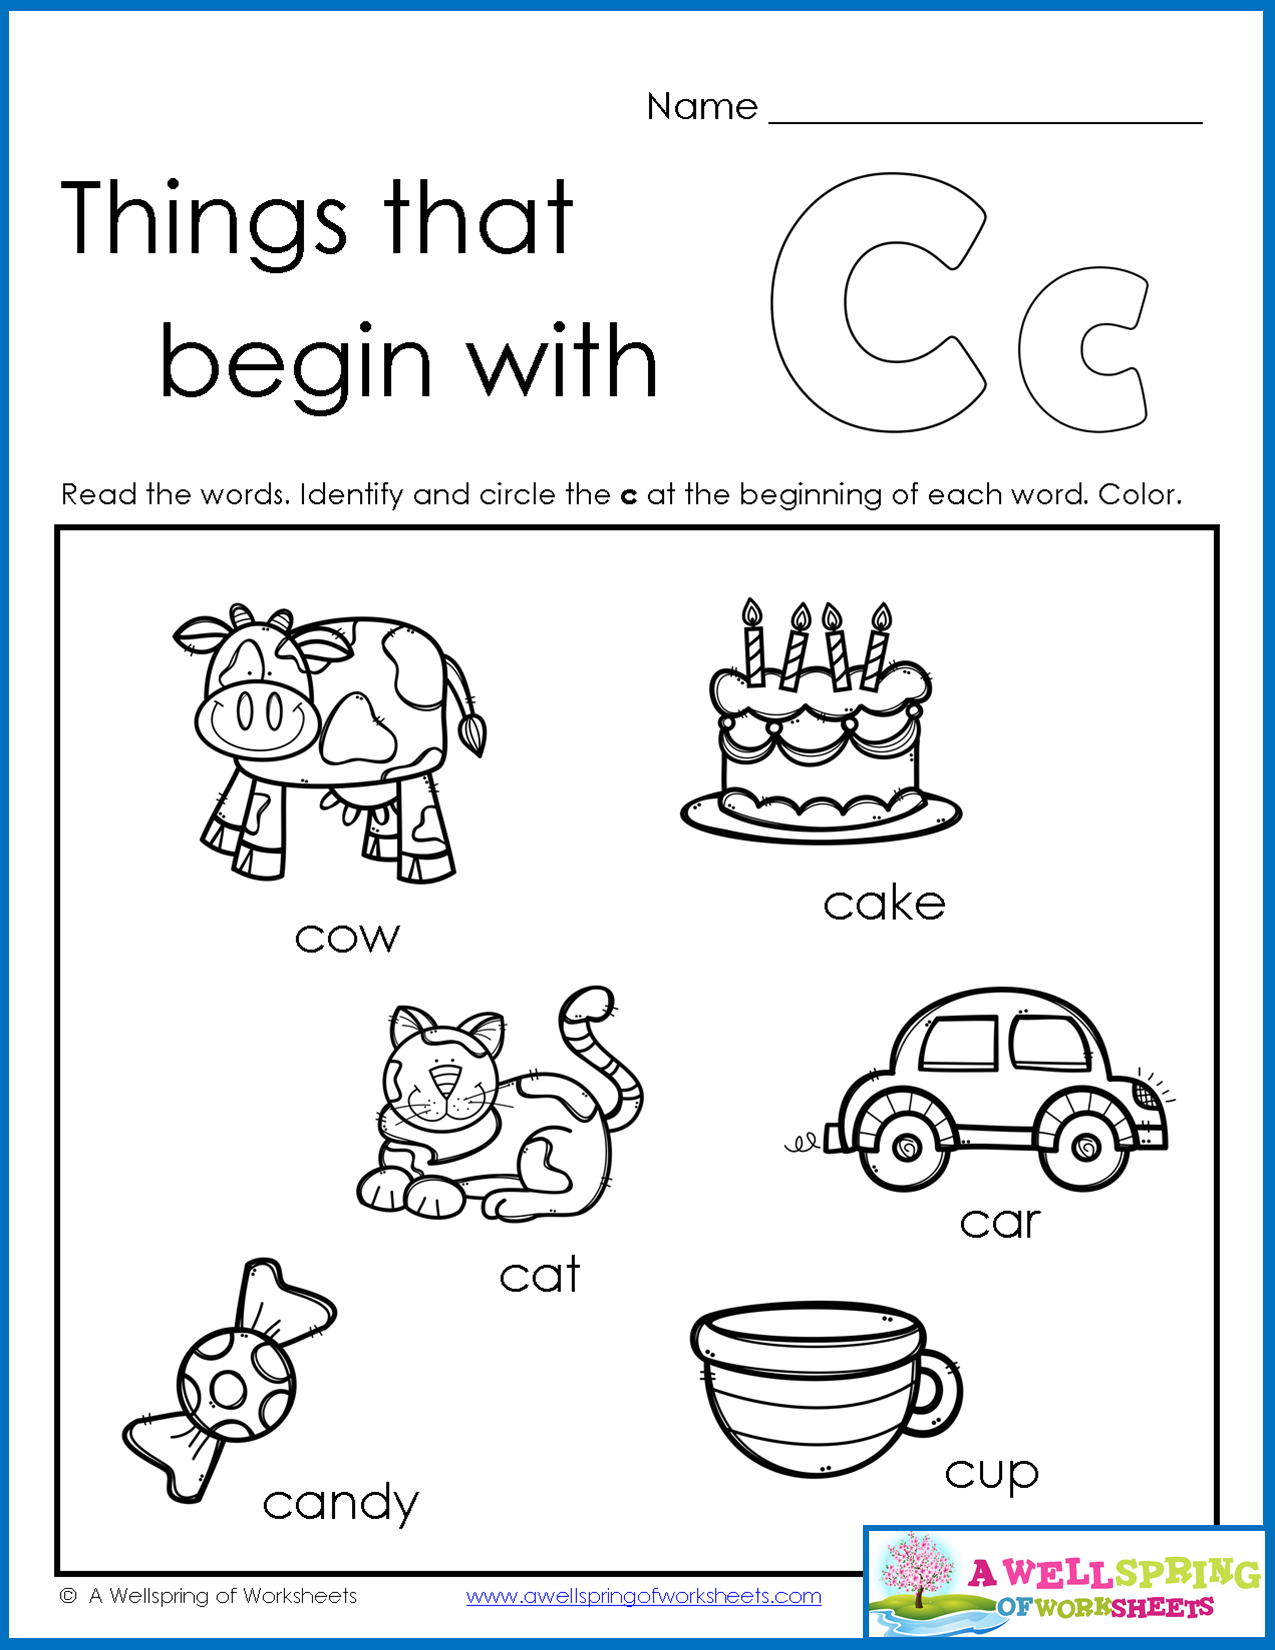 Things that Begin with A-Z Worksheets   Alphabet worksheets preschool [ 1650 x 1275 Pixel ]